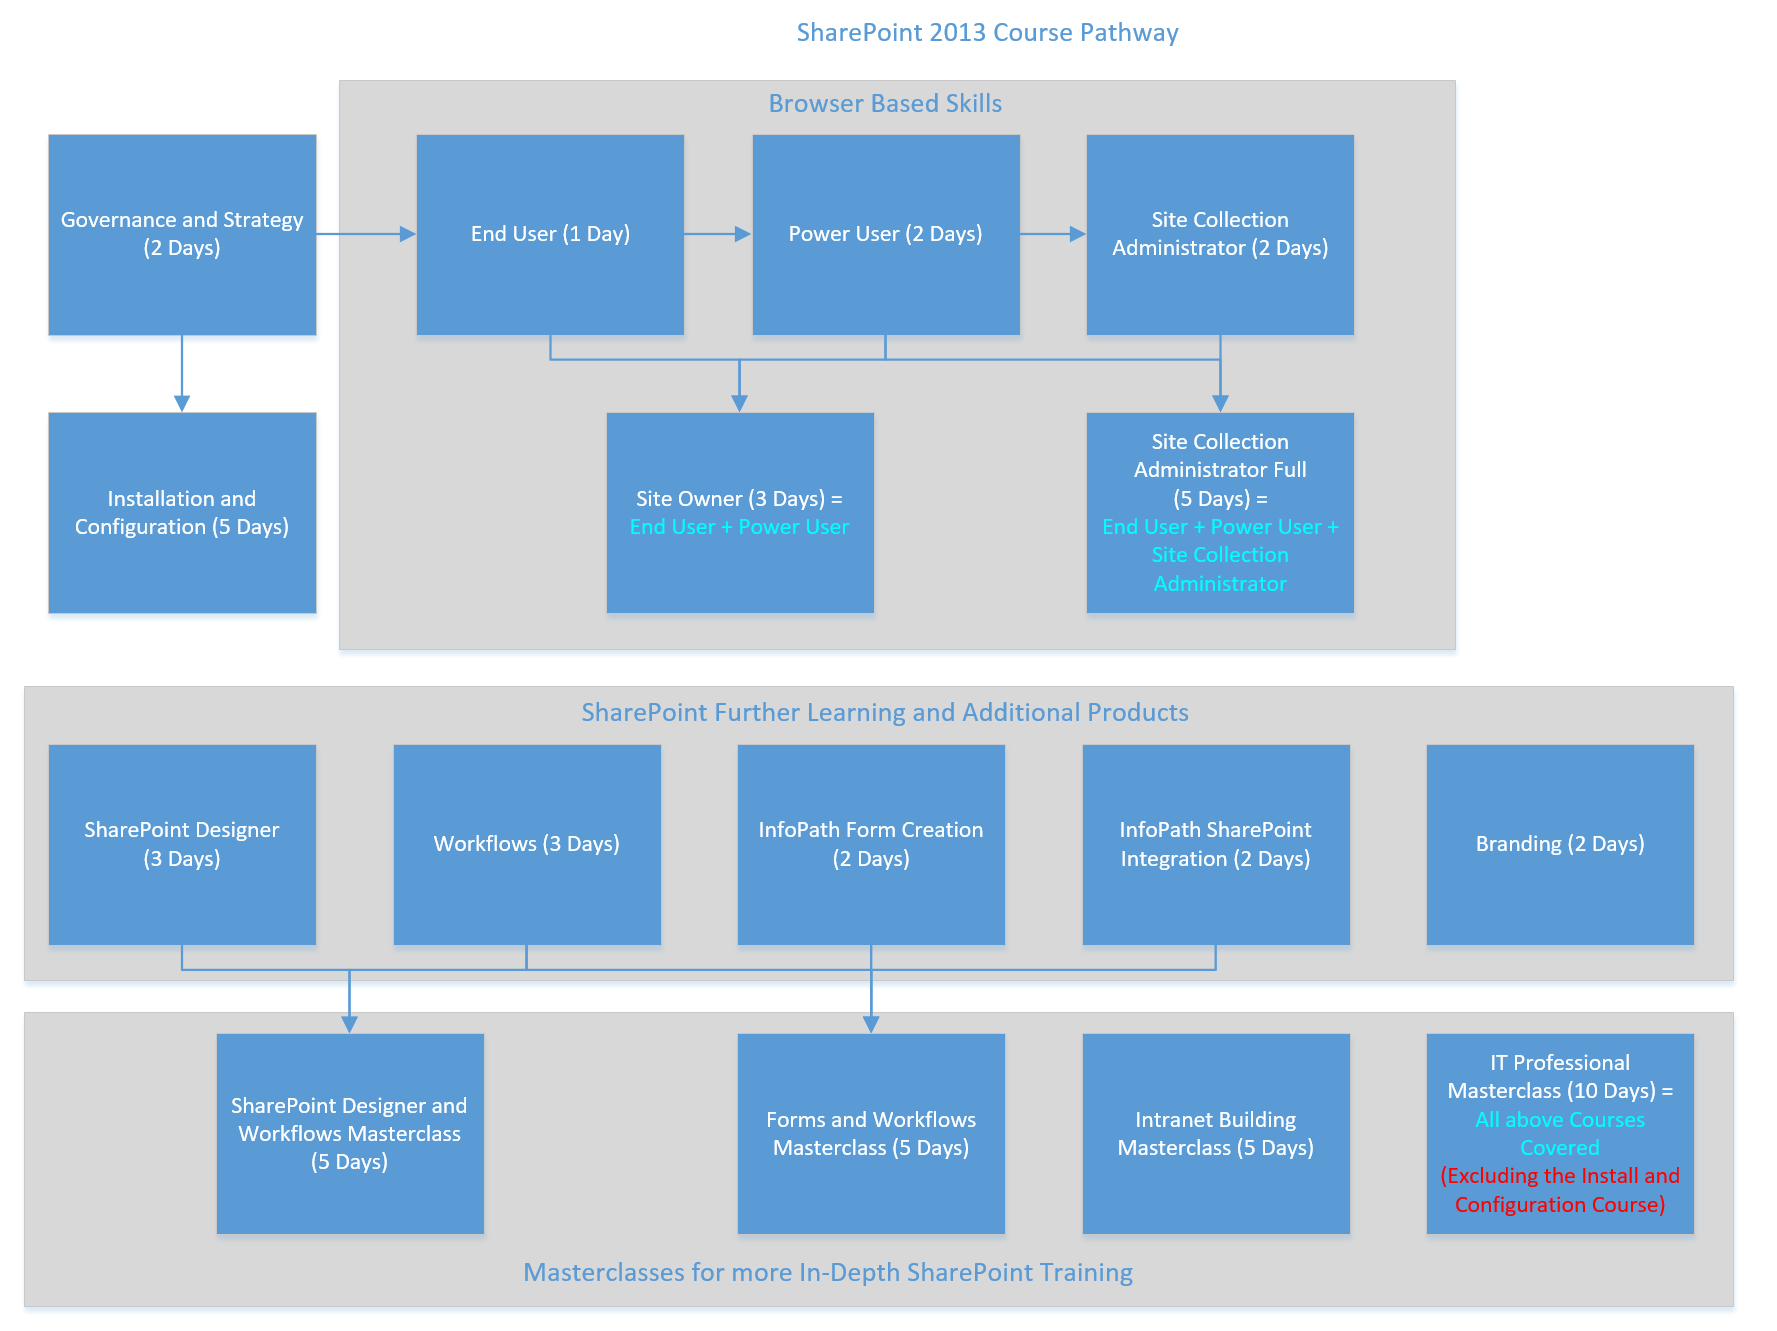 Course Pathway SharePoint 2013